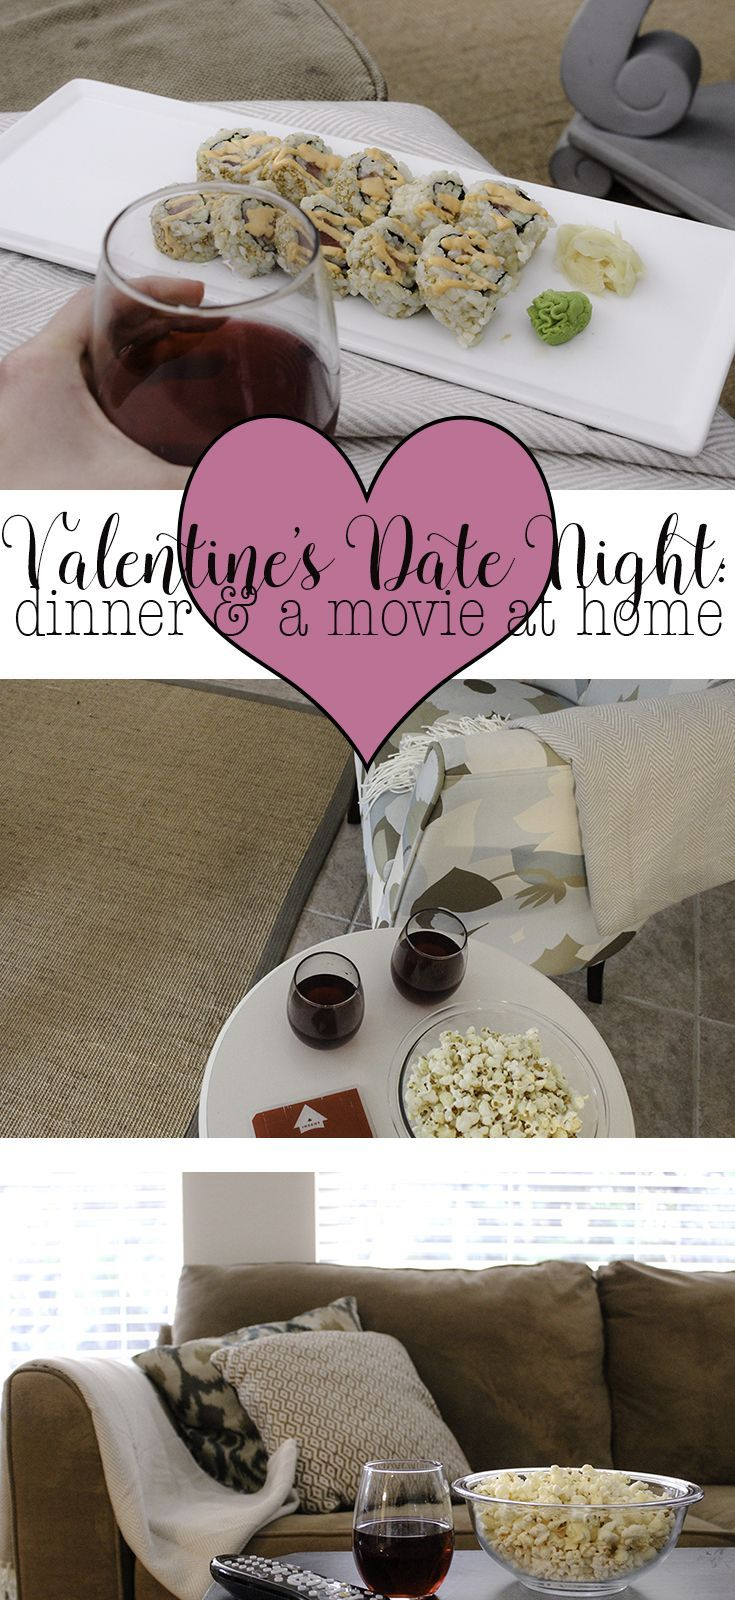 Easy valentines date night idea dinner and a movie at home fun check out this super easy valentines date night idea do dinner and a movie at home and save money and your sanity by avoiding the crowds solutioingenieria Image collections